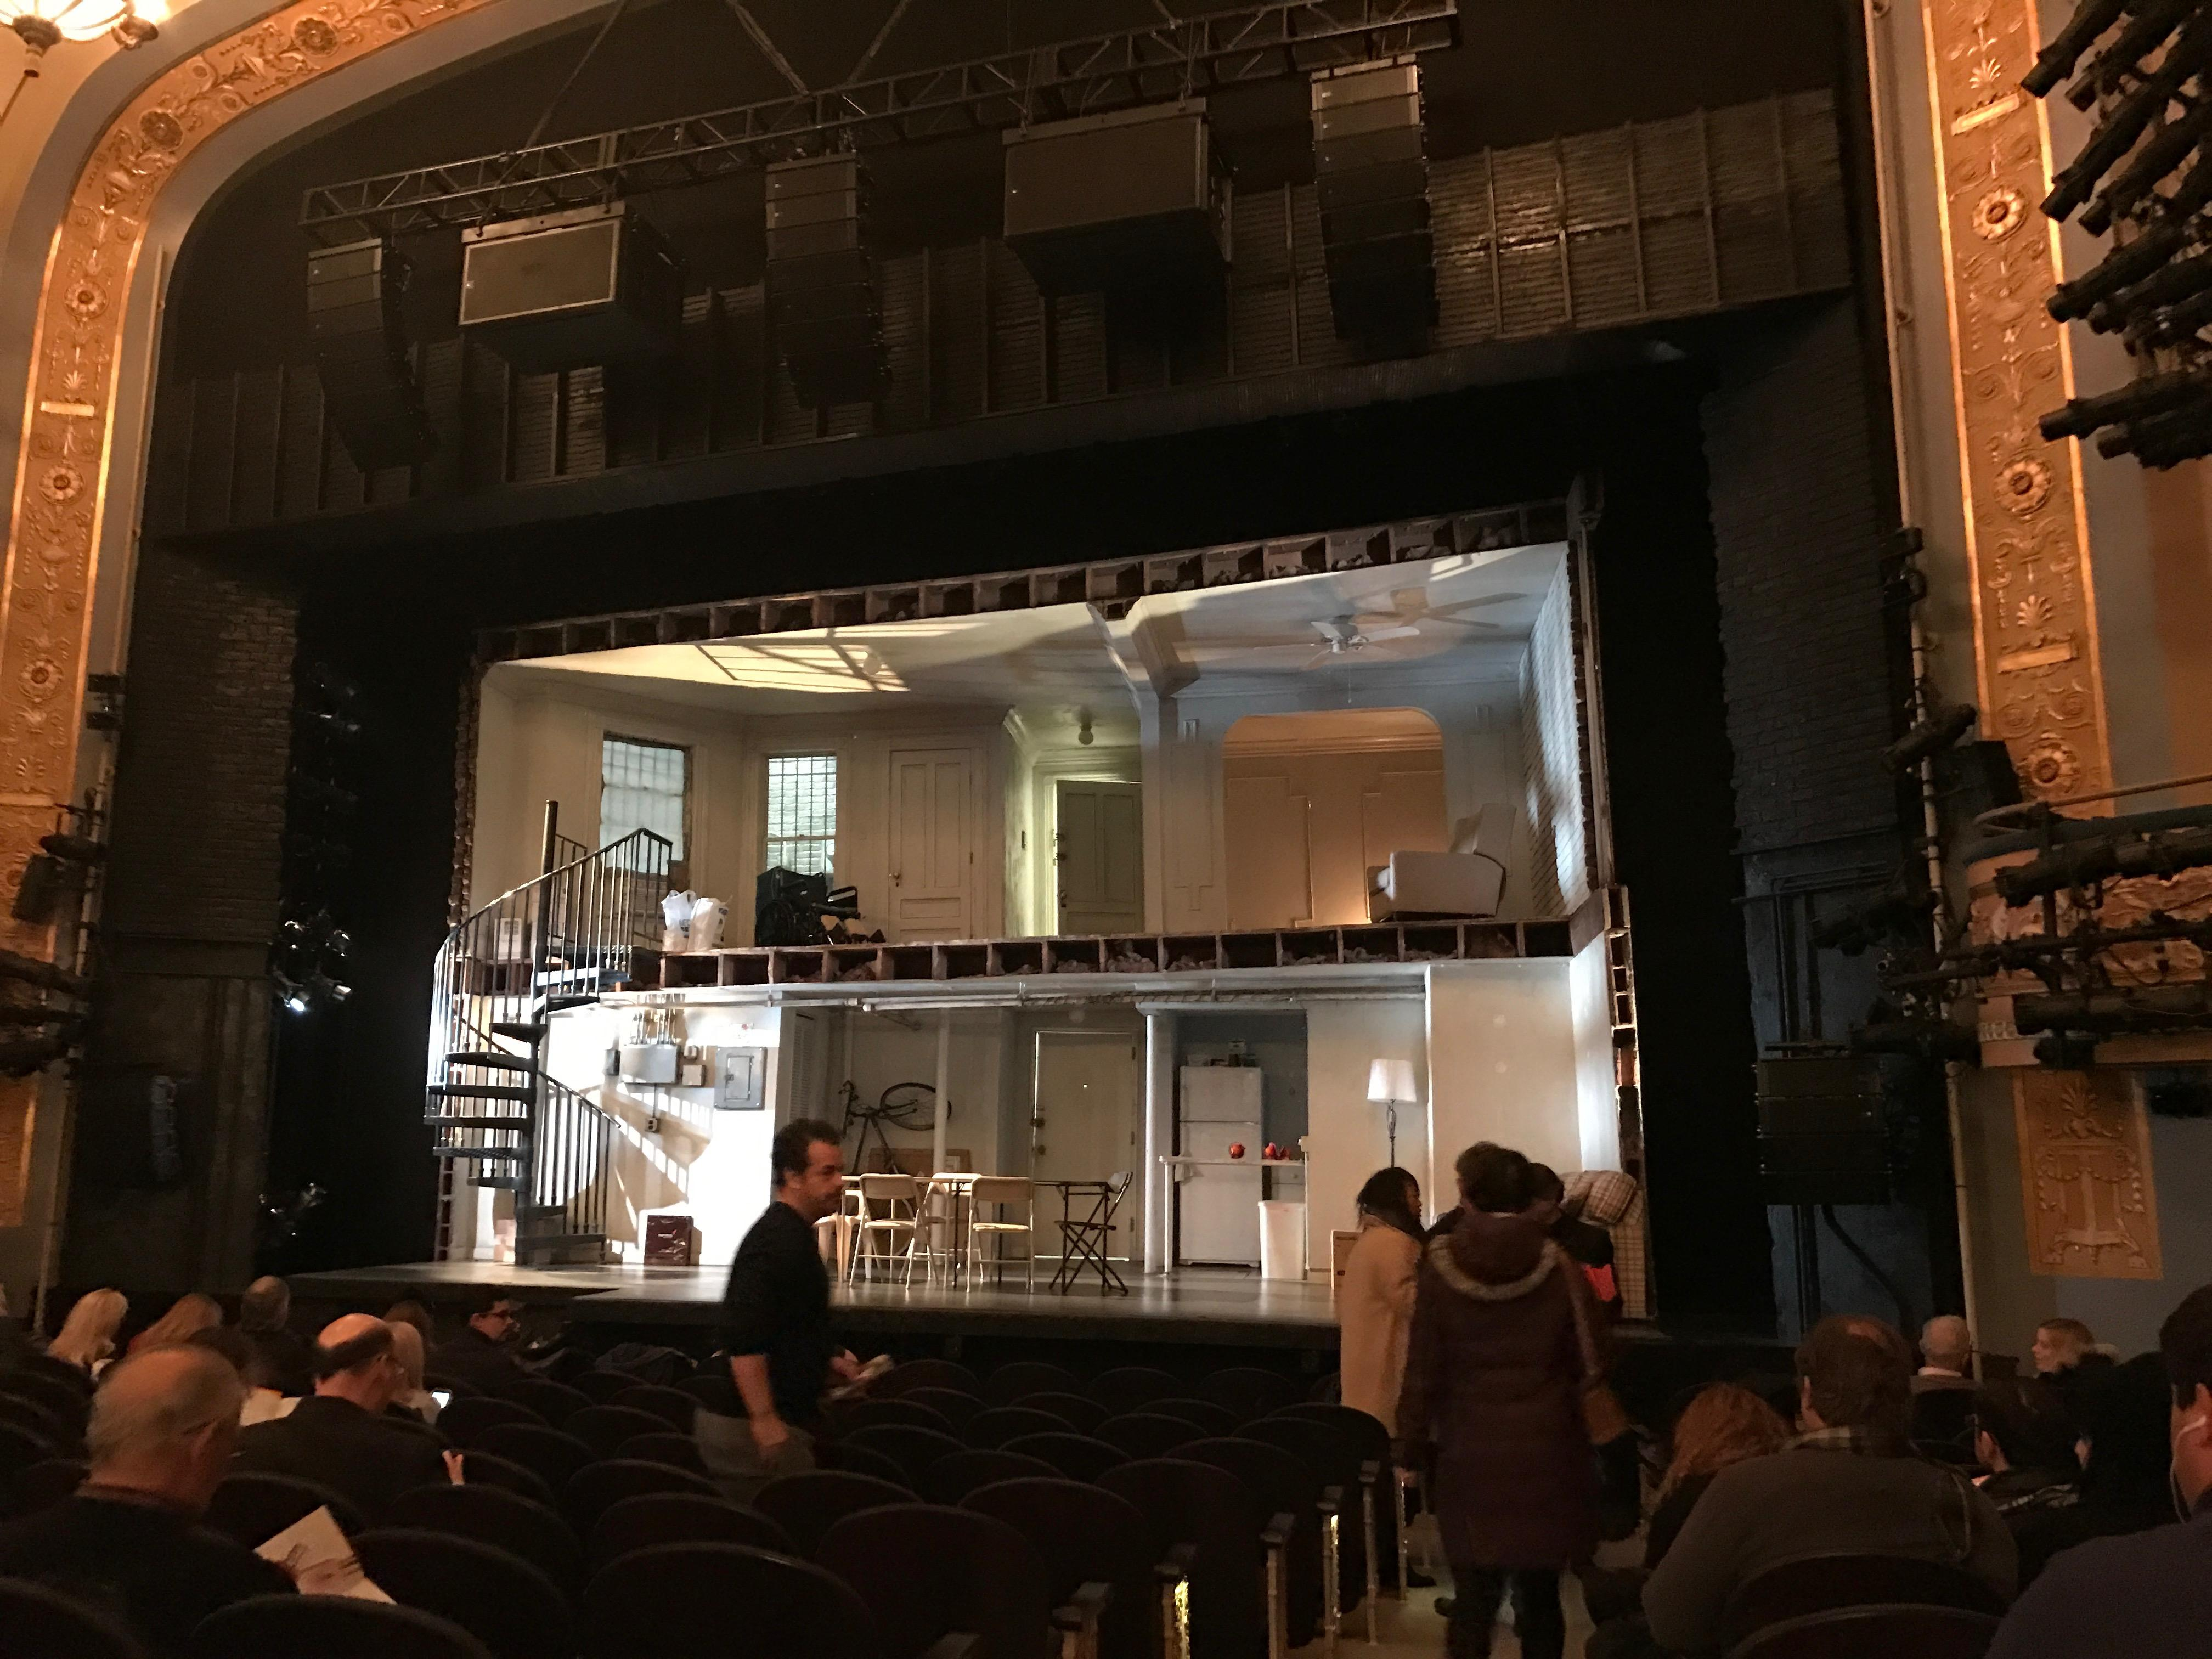 Gerald Schoenfeld Theatre Section Orchestra R Row M Seat 2